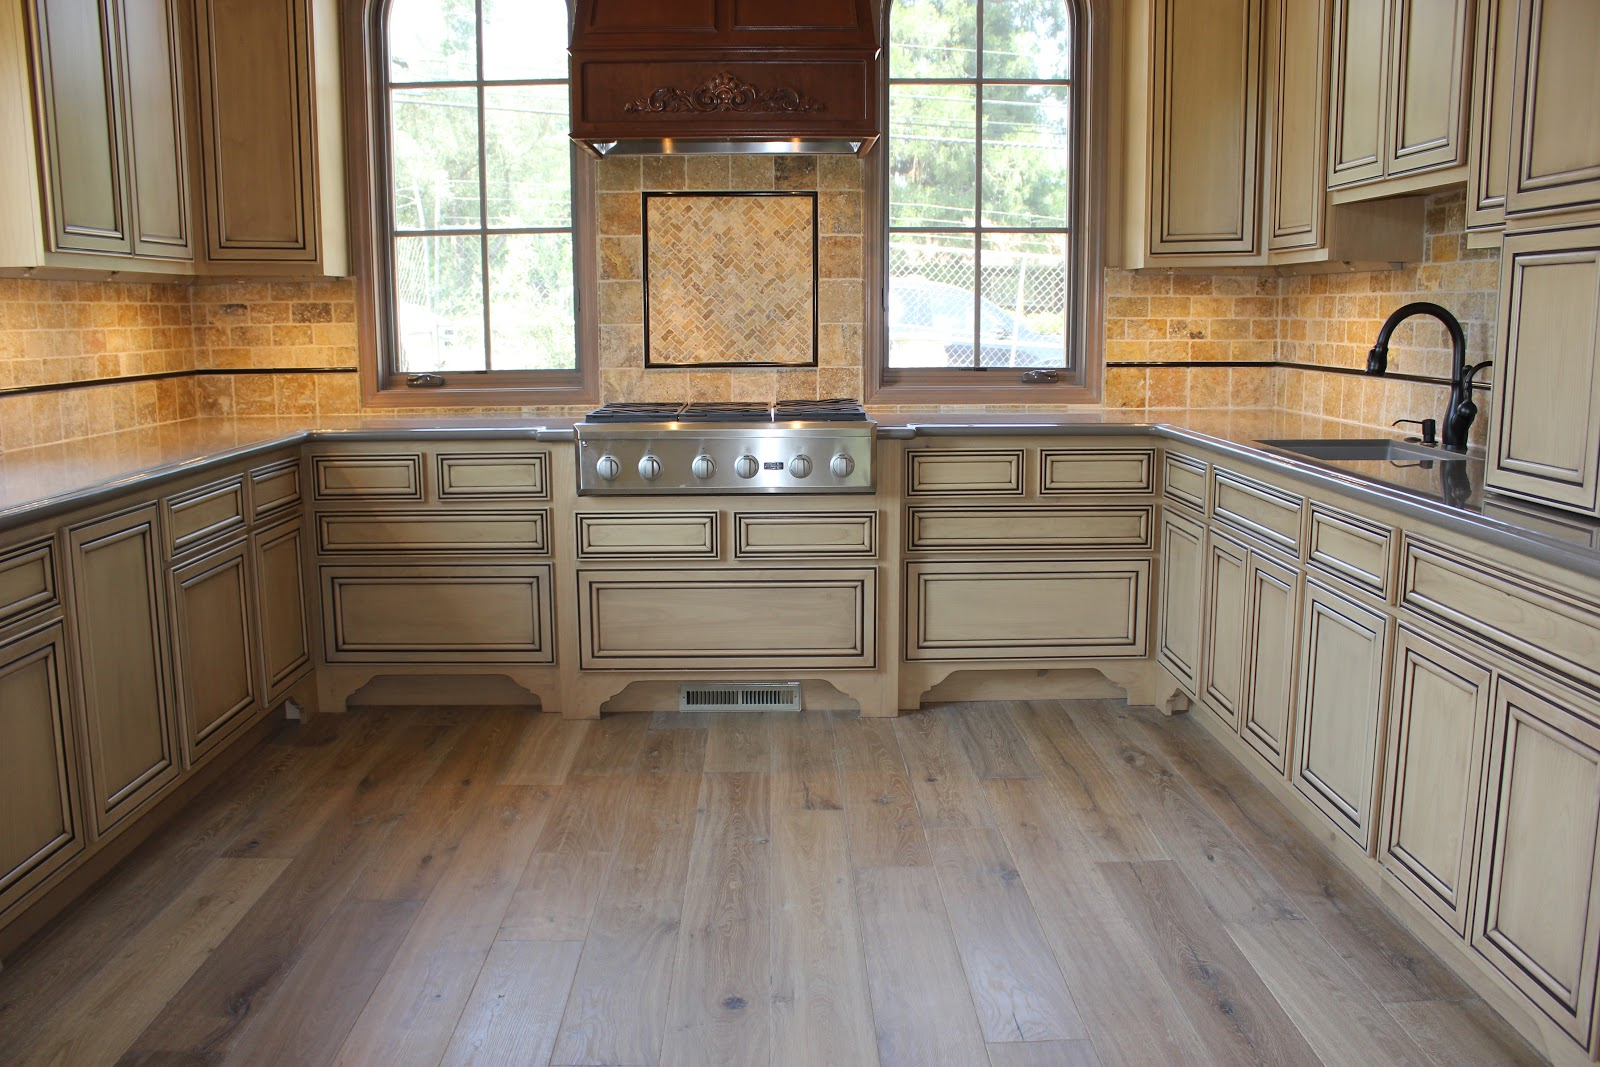 hardwood floor company wood floors in kitchen Stunning Kitchens with Dark Hardwood Floors